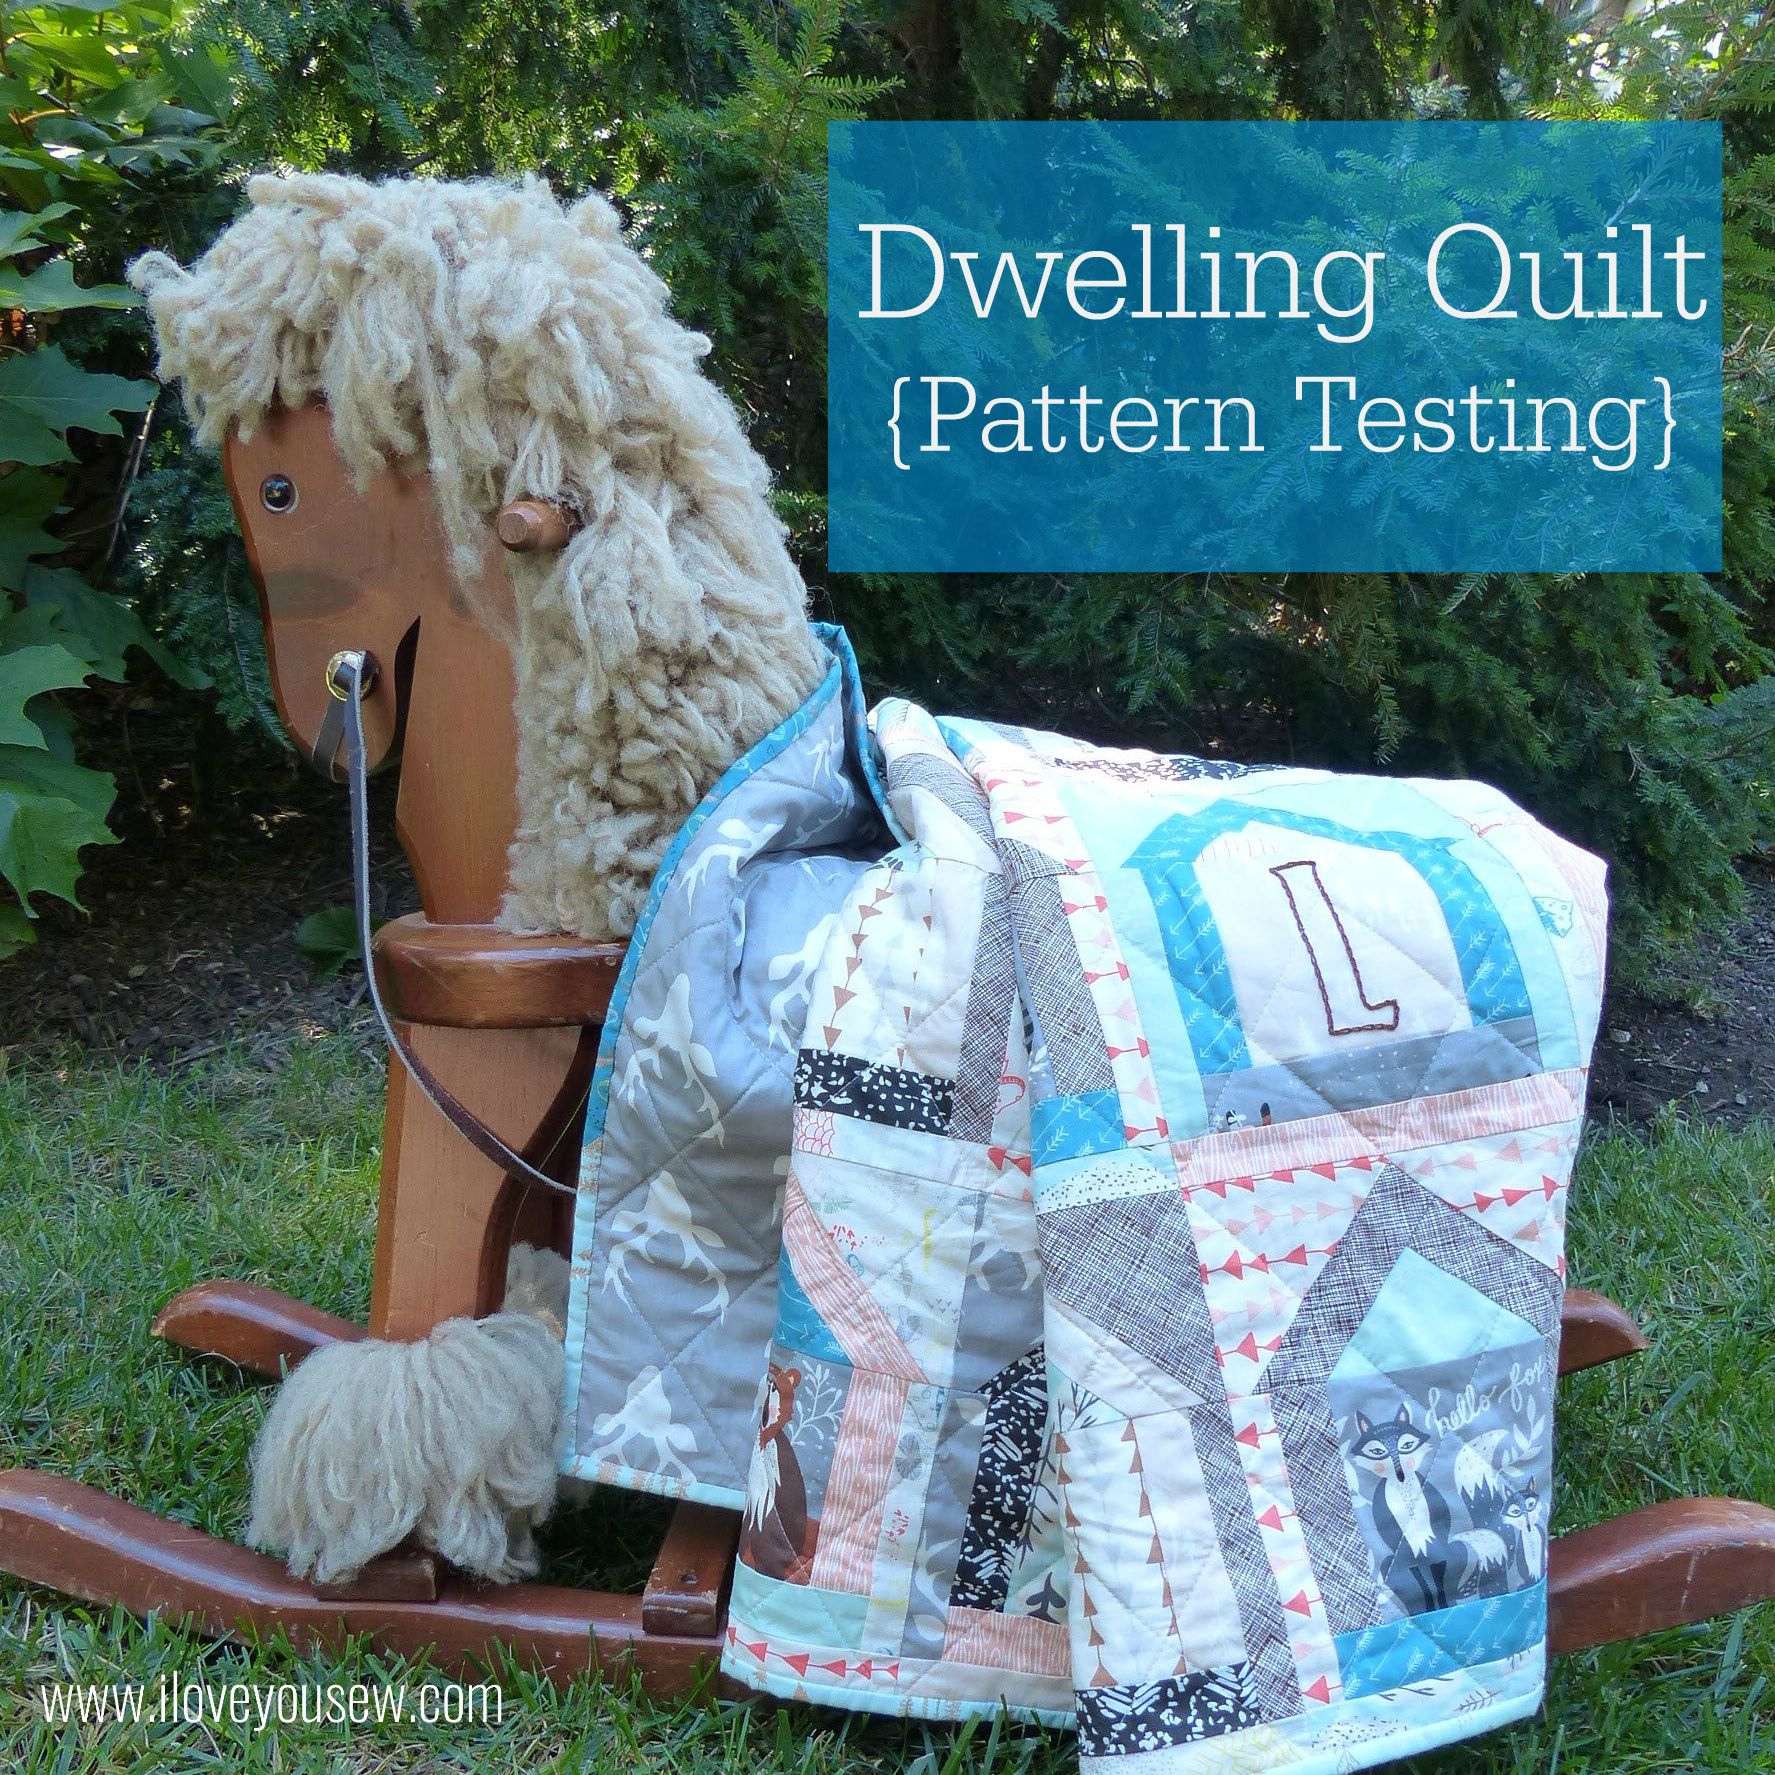 Dwelling  Quilt